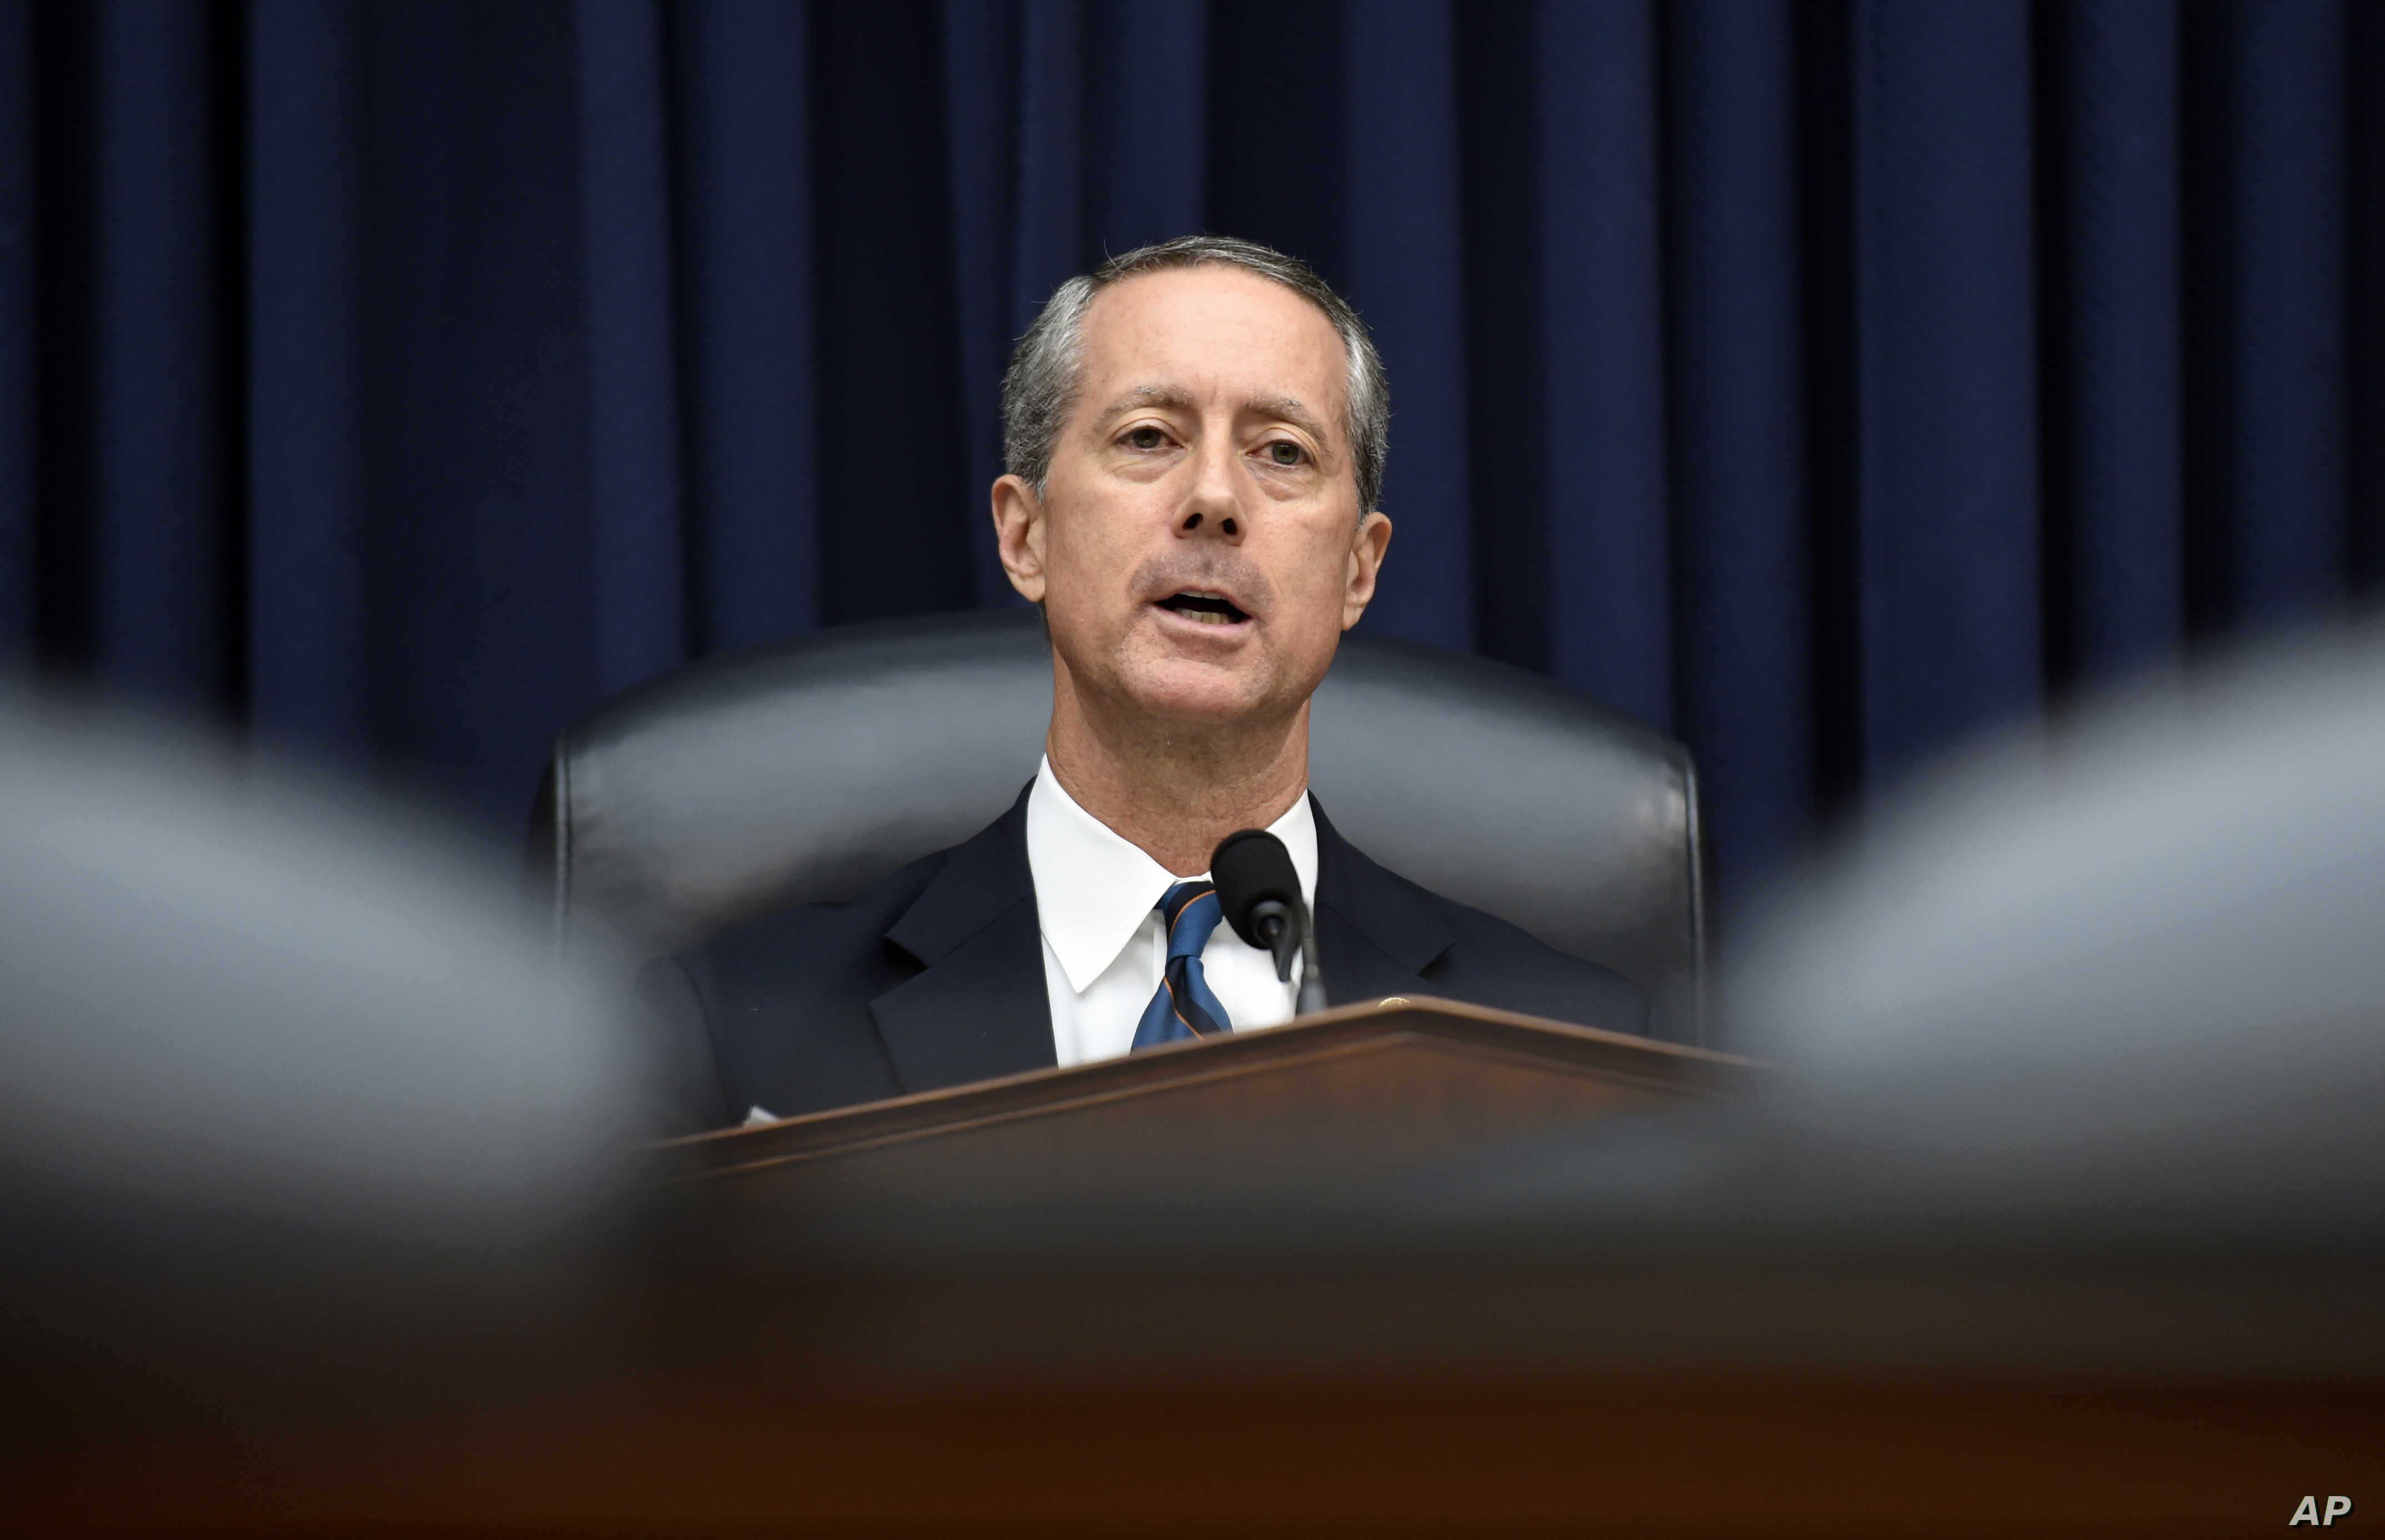 House Armed Services Committee Chairman Rep. Mac Thornberry, R-Texas., speaks during a hearing with Defense Secretary Ash Carter and Joint Chiefs of Staff Chairman Gen. Martin Dempsey on the U.S. policy and strategy in the Middle East, in Washington,...